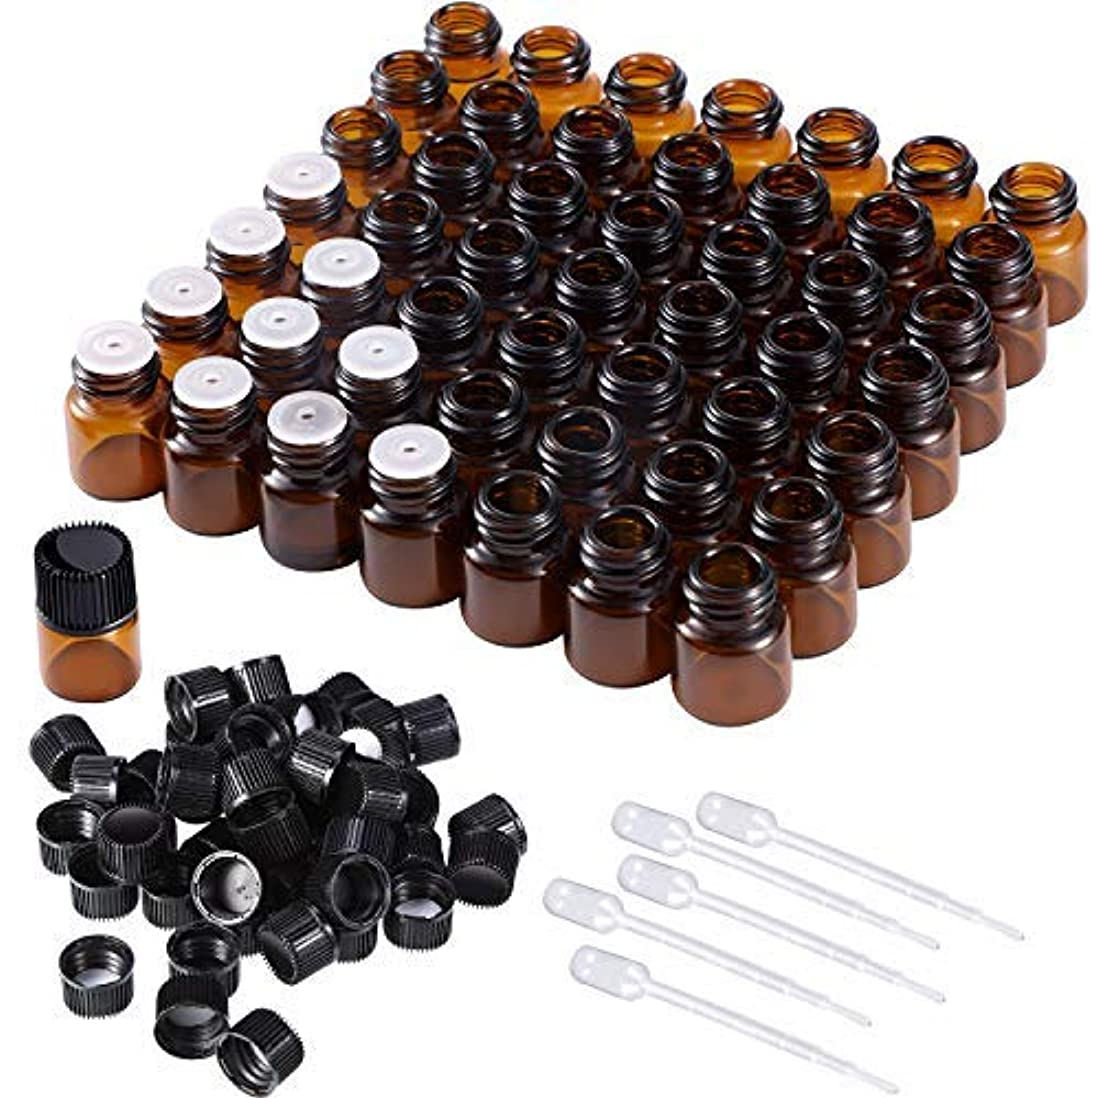 50 Pieces 1 ml Mini Amber Glass Vial Bottles Essential Oil Bottles with Orifice Reducers Screw Caps and 5 Pieces...